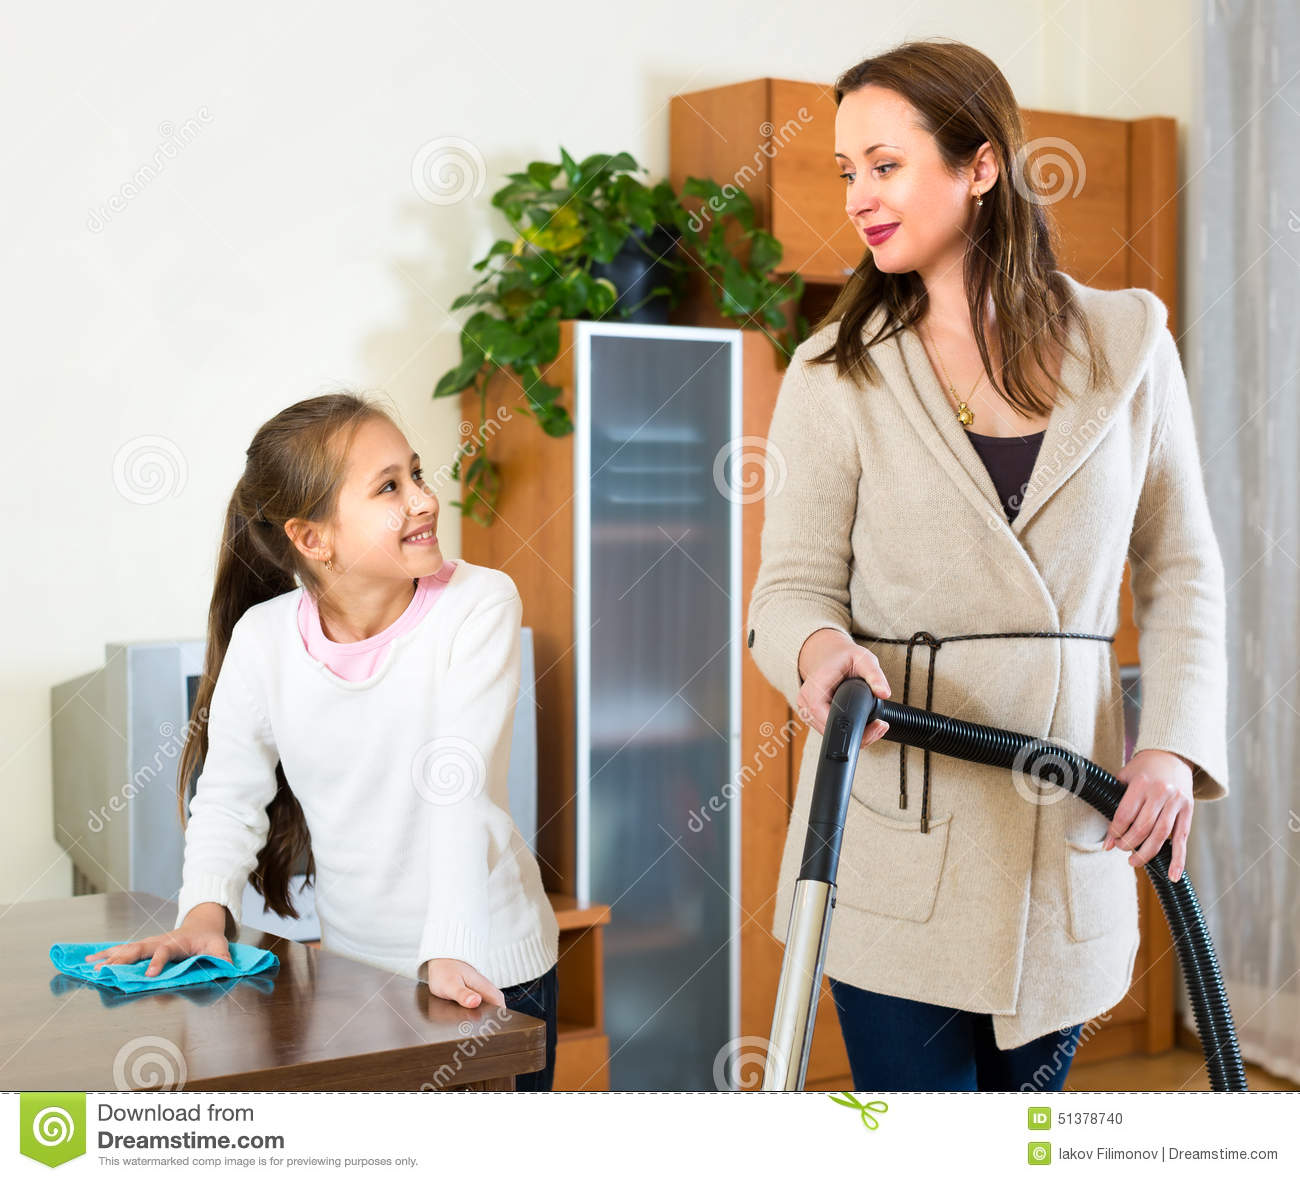 Mother and daughter cleaning house stock photo image for House cleaning stock photos